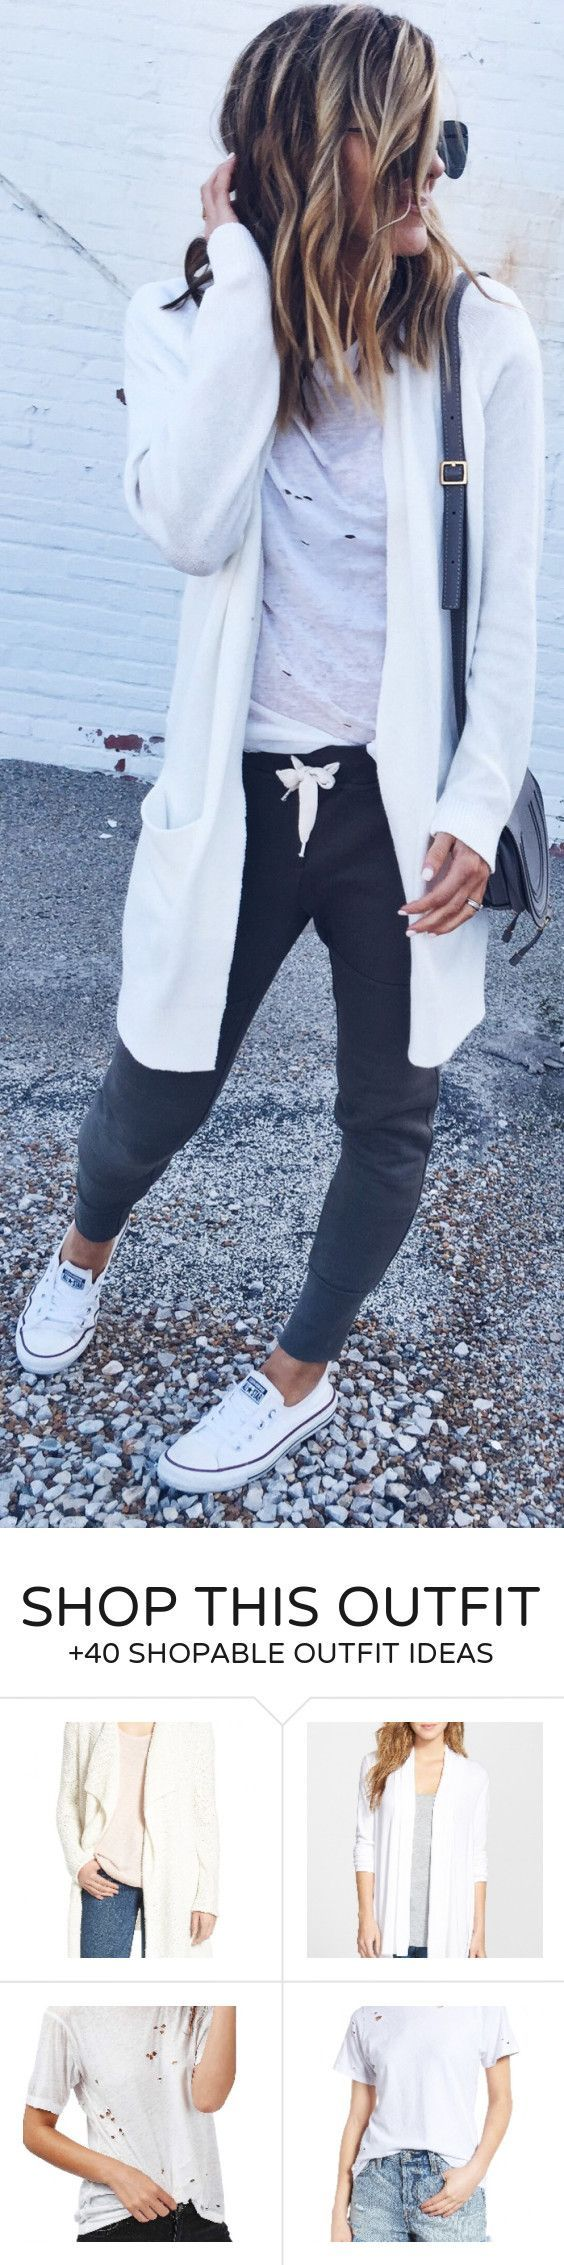 #winter #fashion / White Cardigan / White Ripped Top / Dark Pants / White Sneakers